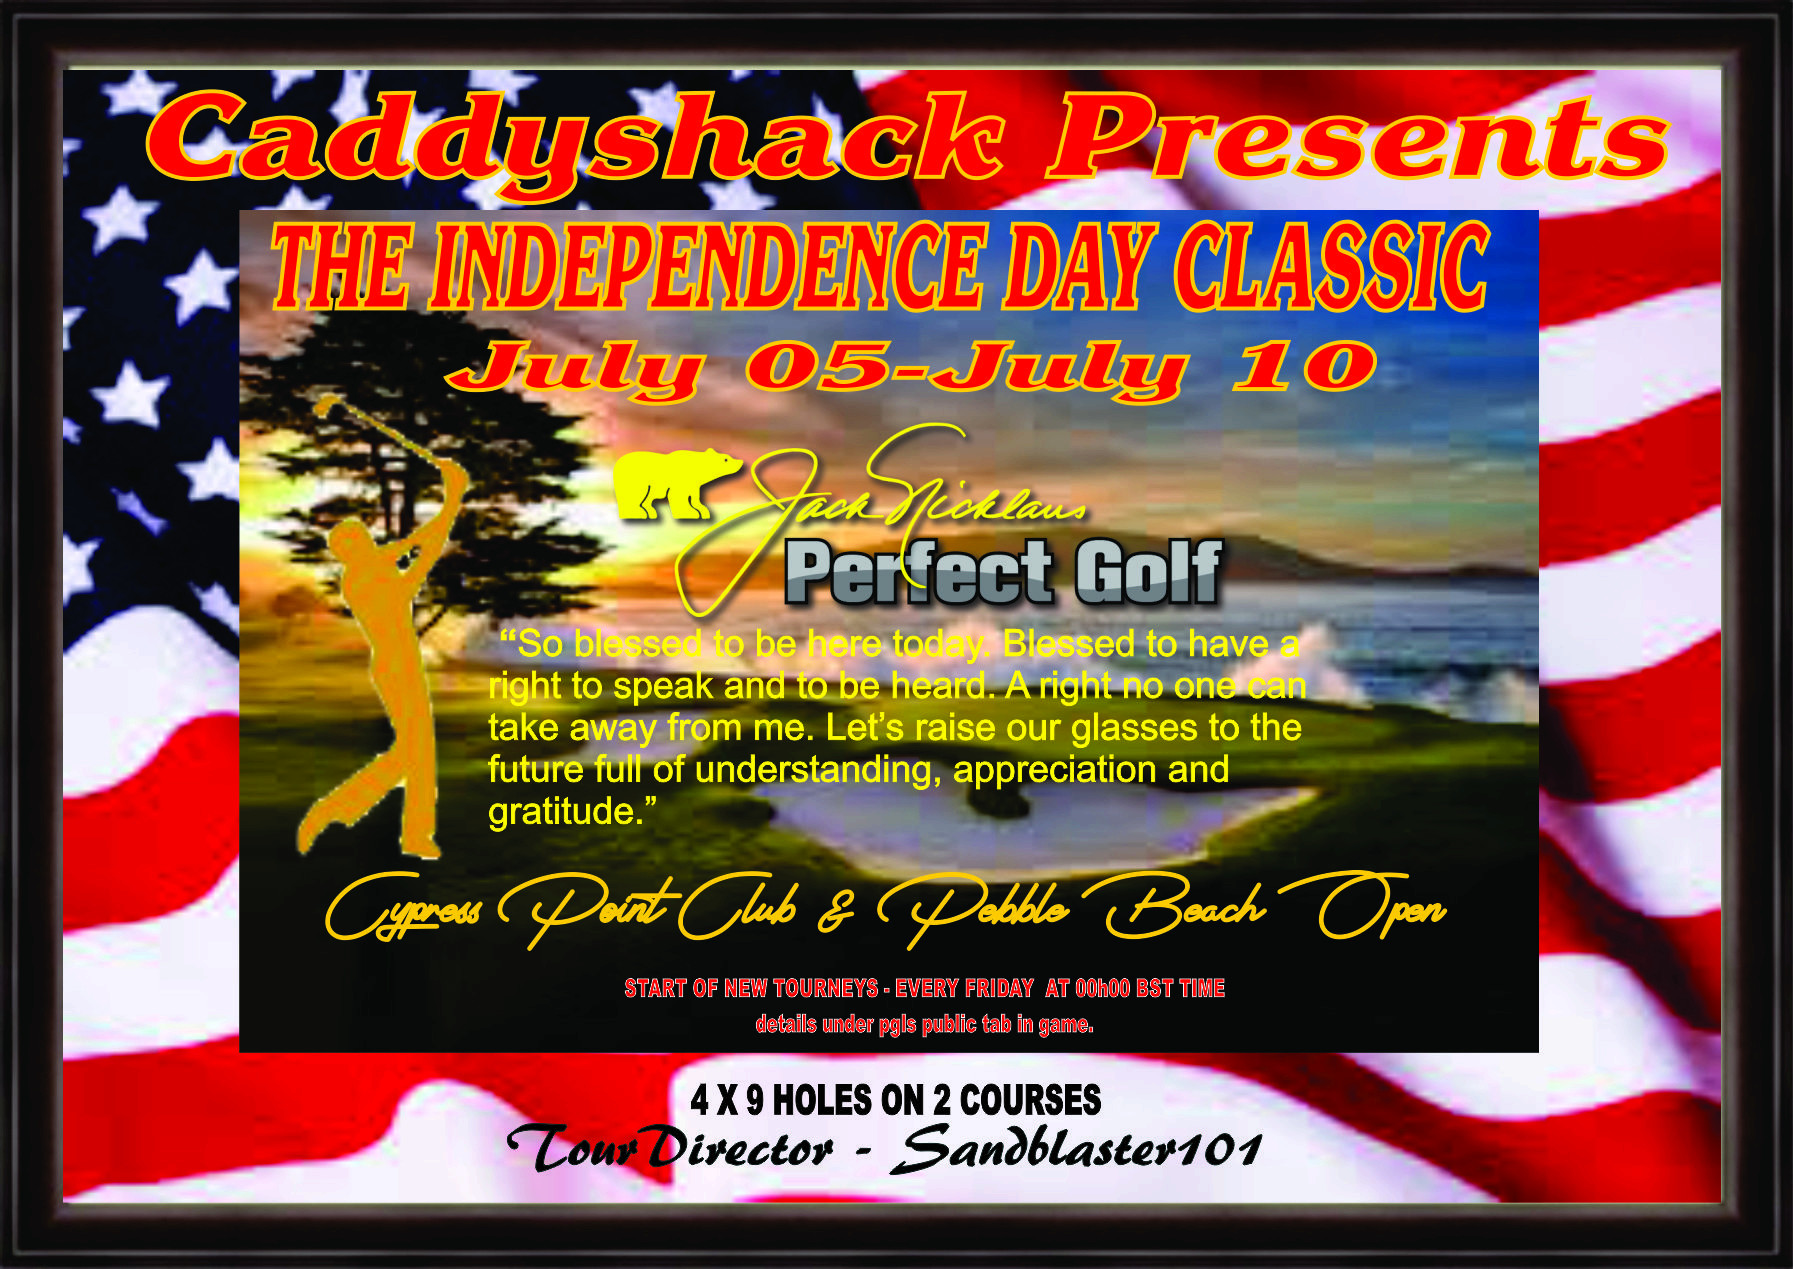 CaddyShack Weekly Tournament Indepe10